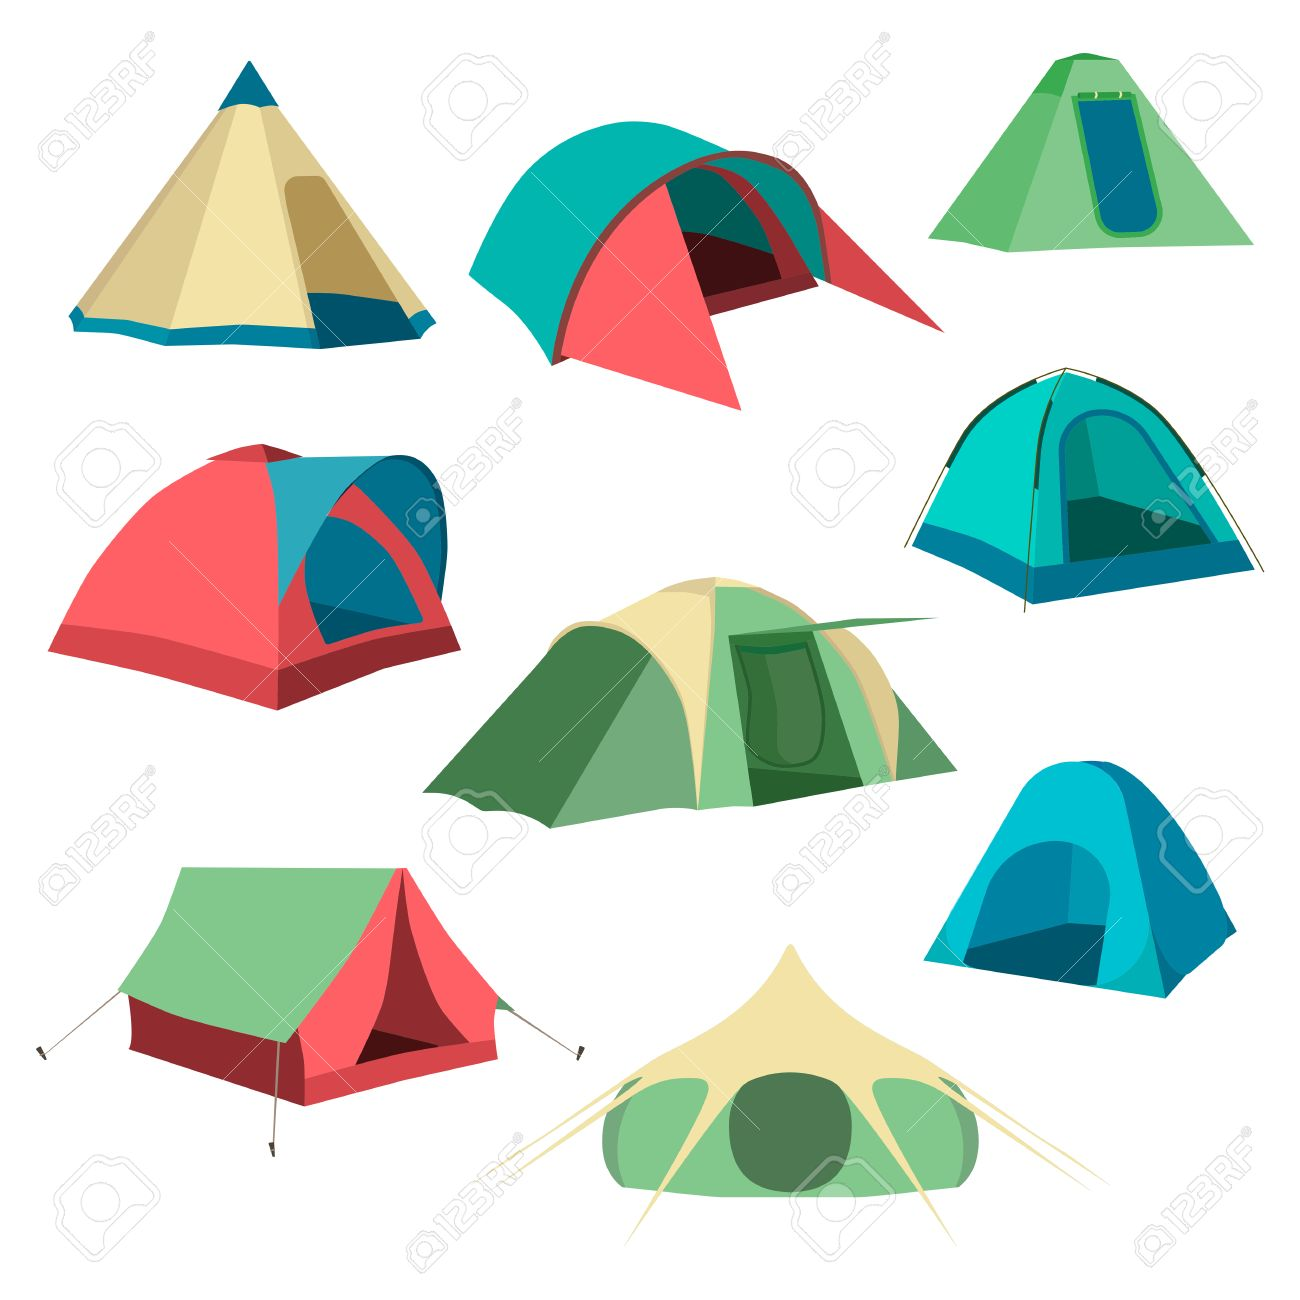 Set of tourist tents. Collection of camping tent icons. Vector illustration eps10 - 67575942